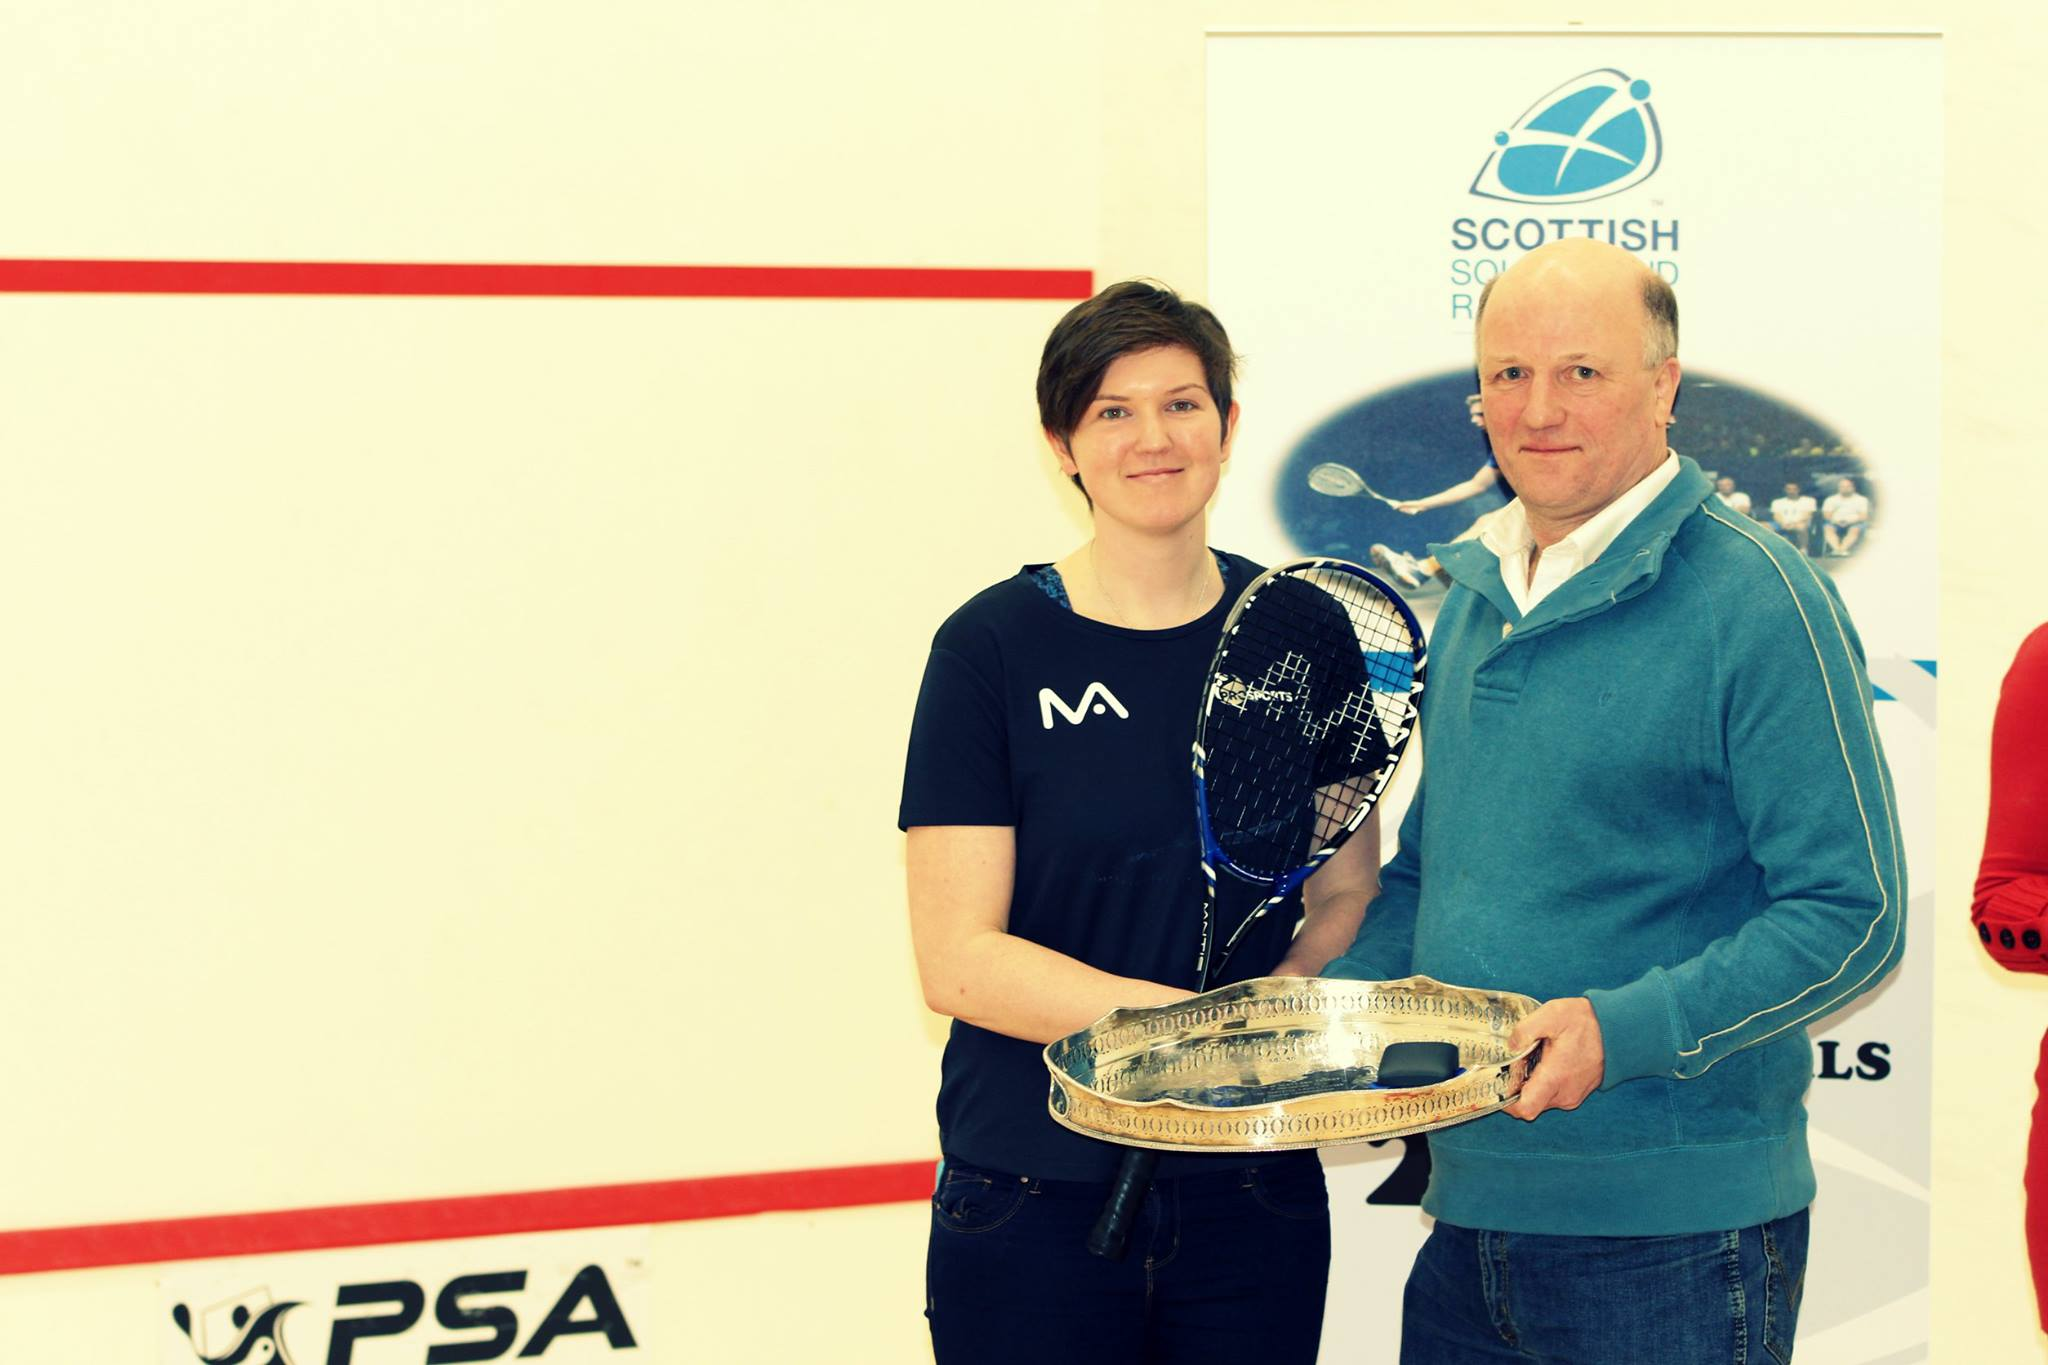 Sterling Trucks Scottish Nationals 16 - Winners Presentation Ladies Winner 1